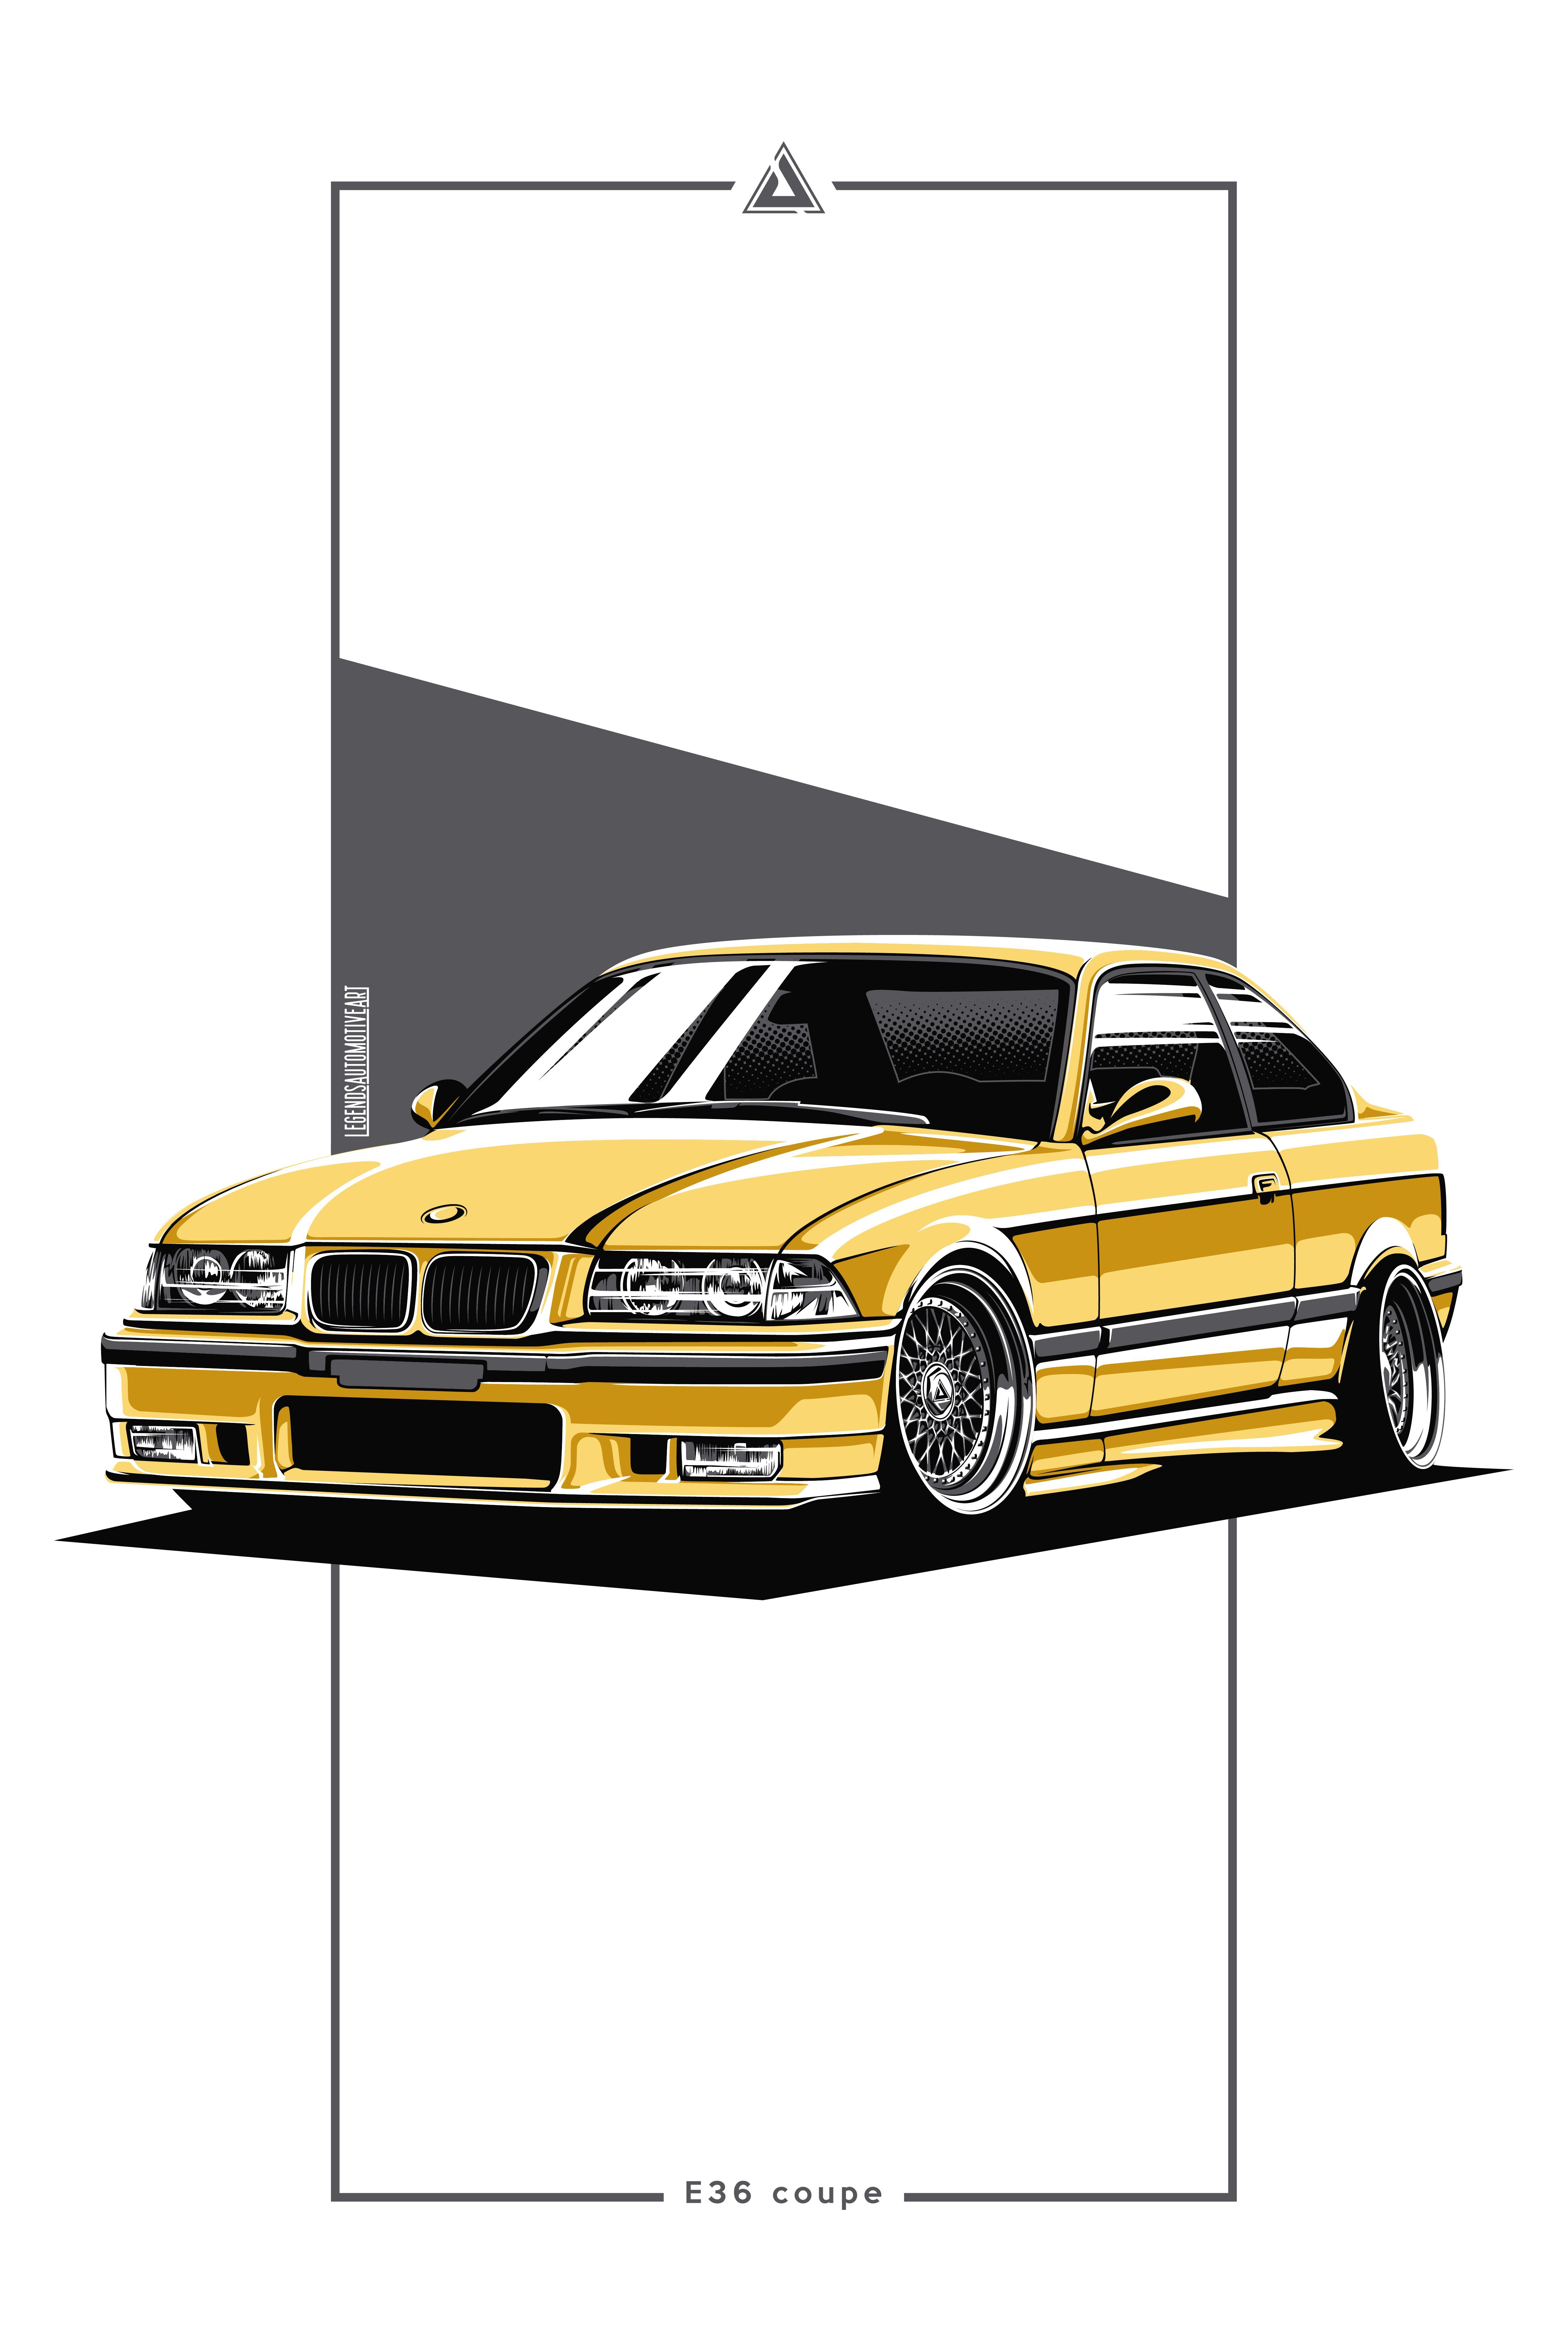 This high-quality A2 print features the iconic BMW E36 Coupe depicted in this high-quality rendering and presentation exclusively by Legends Automotive Art. A2 (594 x 420 mm). Limited edition print of 100 pieces. High-quality print with gloss finish with border. Printed on high-quality 200gsm paper. #BMW #poster #BBS #e36 #coupe #DakarYellow #S62B44 #fitment #lowcar #car #carcult #m3 #RS #HellaBlack #forinterior #LAA